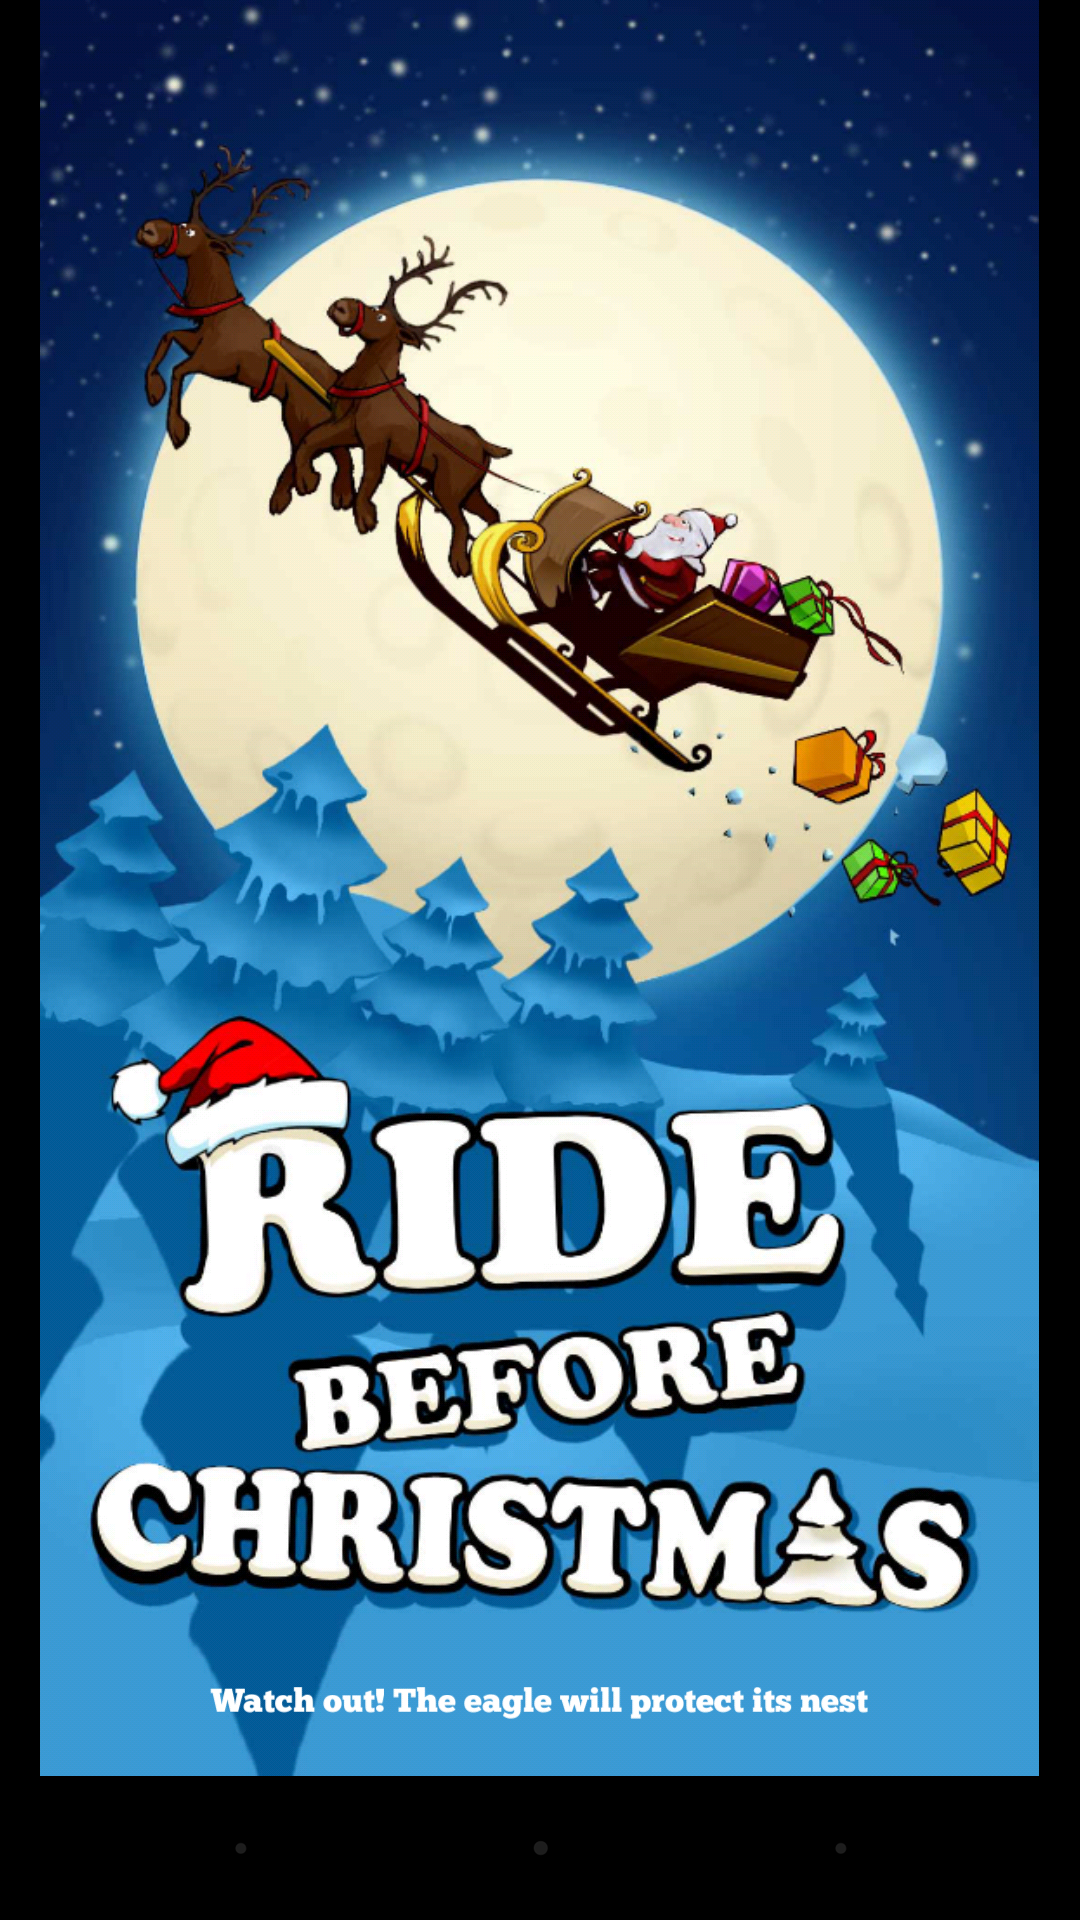 Ride before Christmas